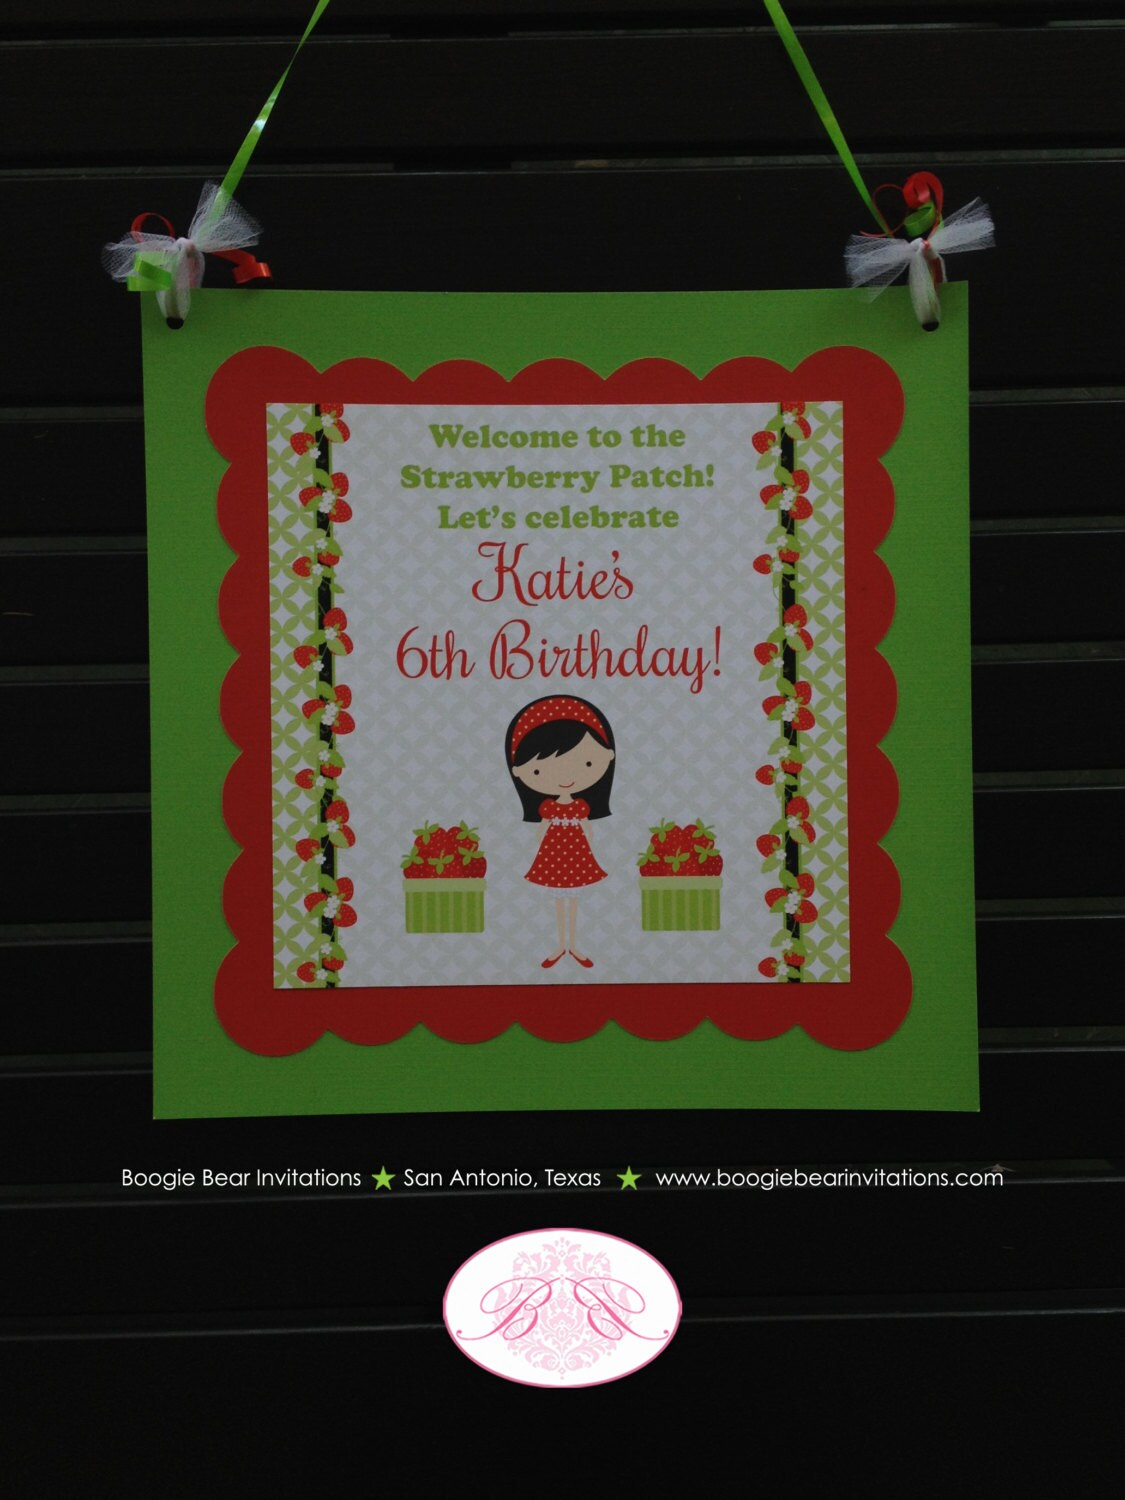 Strawberry Girl Party Door Banner Birthday Red Green Orchard Summer 1st 2nd 3rd 4th 5th 6th 7th 8th 9th Boogie Bear Invitations Katie Theme